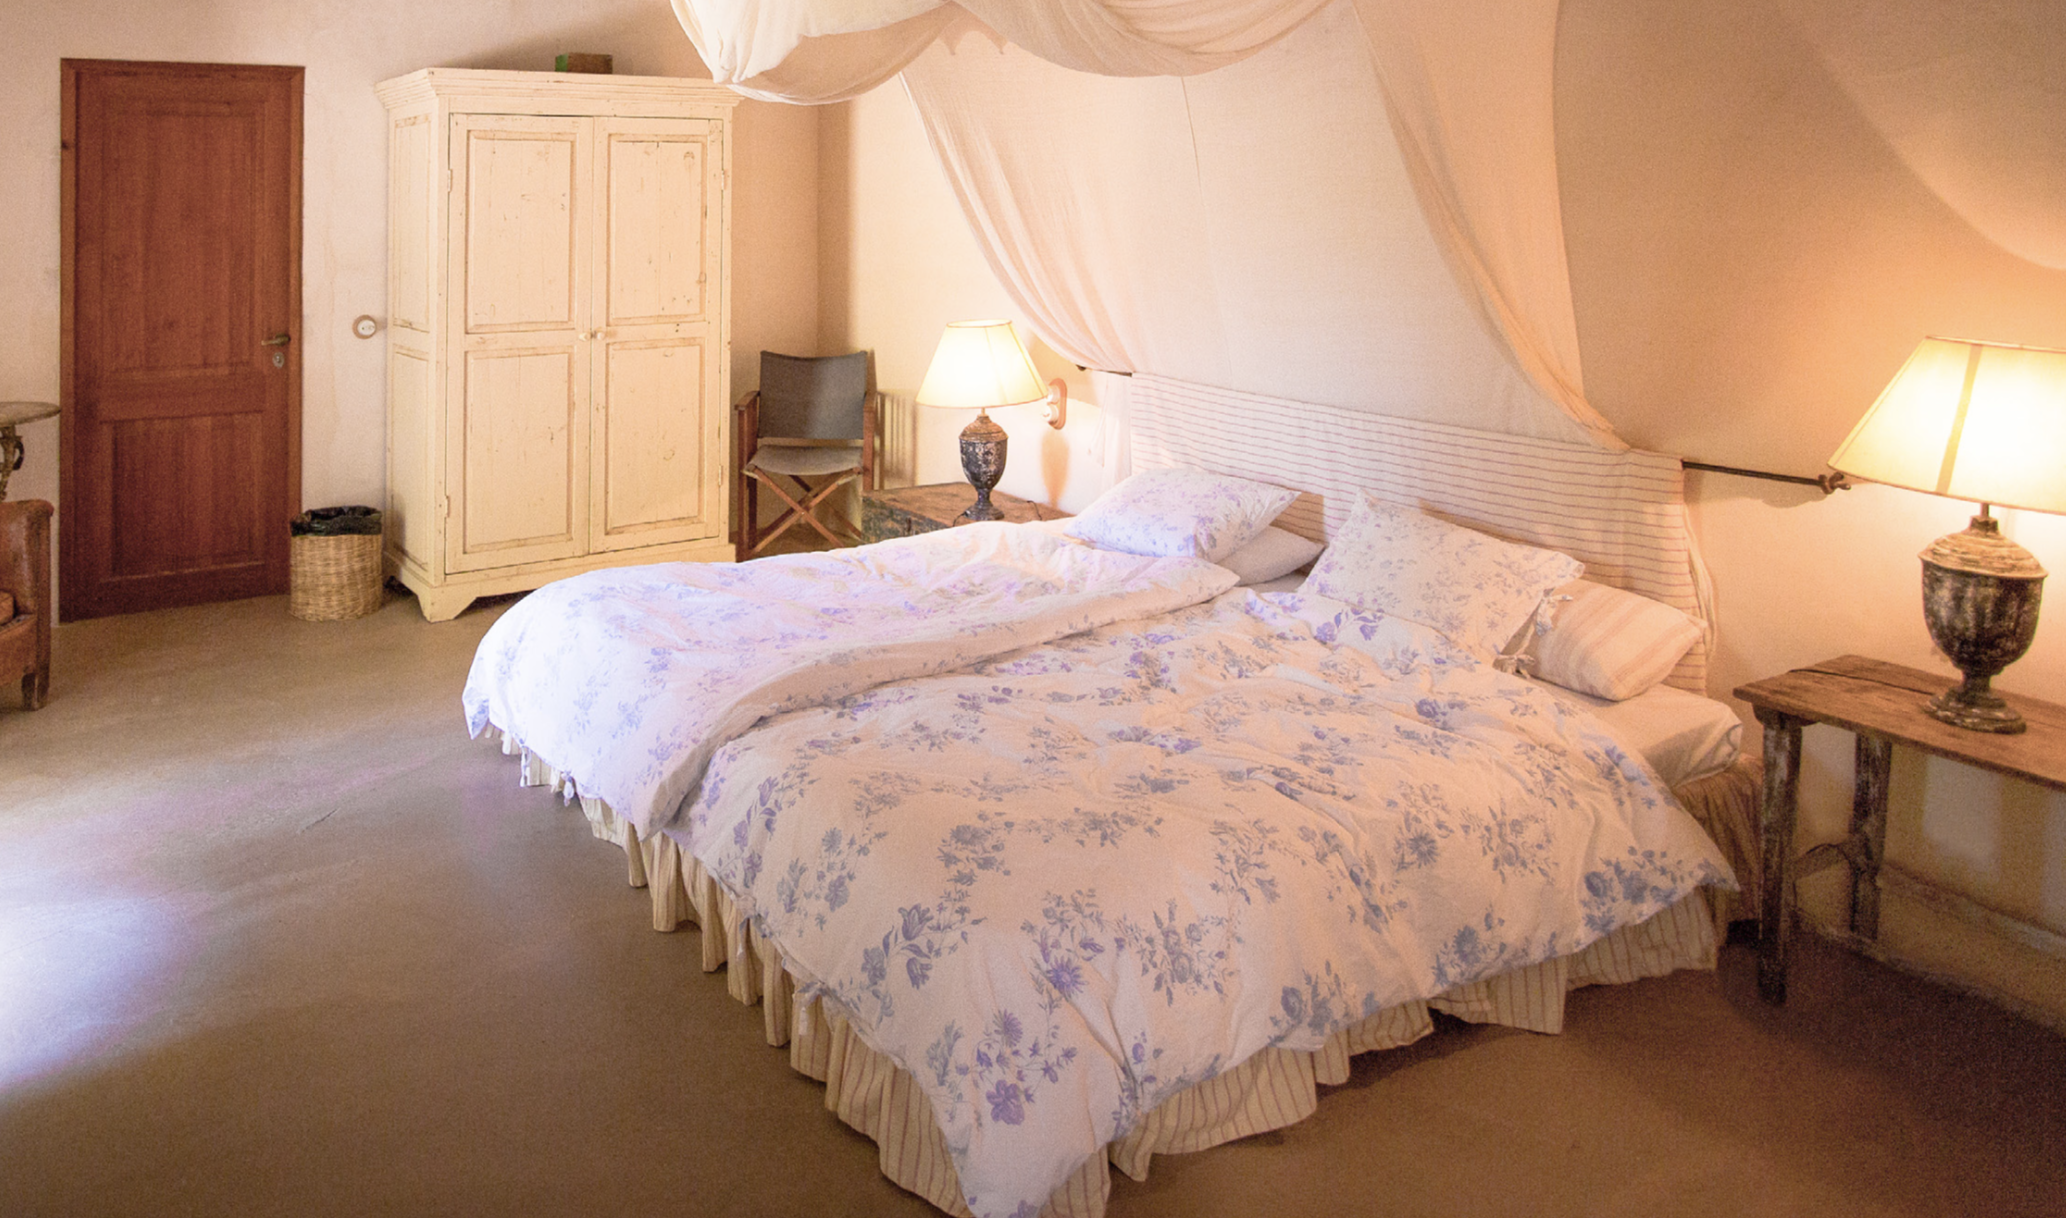 GRASPING THE WIND Spacious ensuite suite  4 Day Programme 1550 € p.p. 7 Day Programme 2550 € p.p.